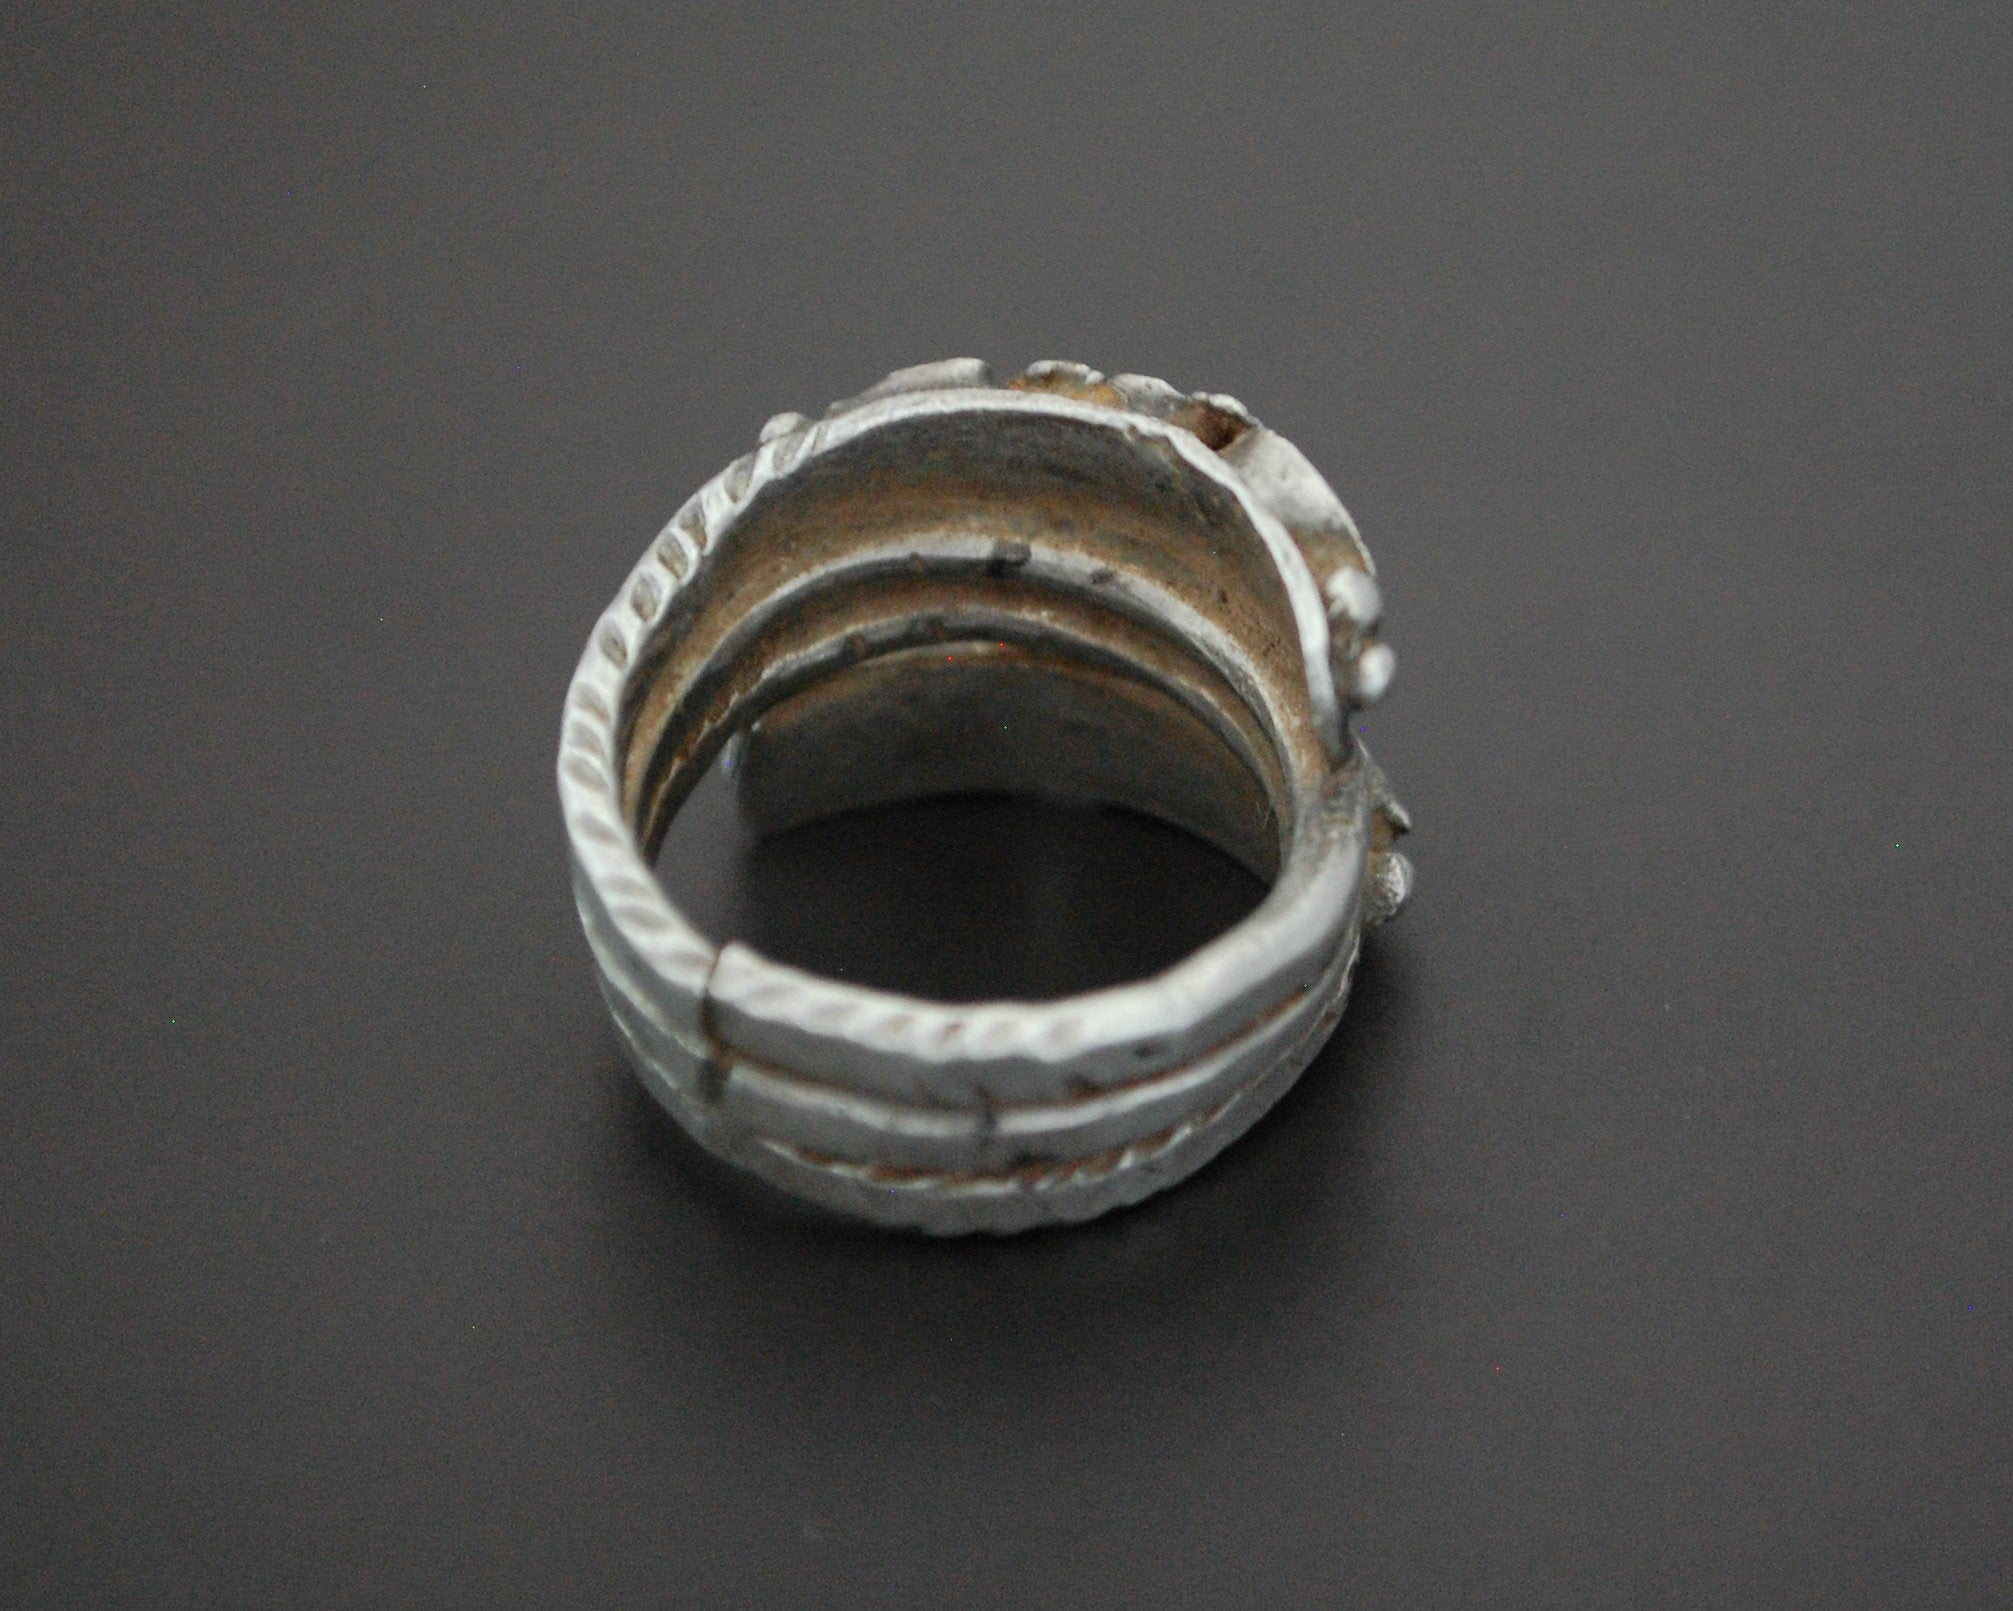 Ethnic Coil Ring from Afghanistan - Size 7